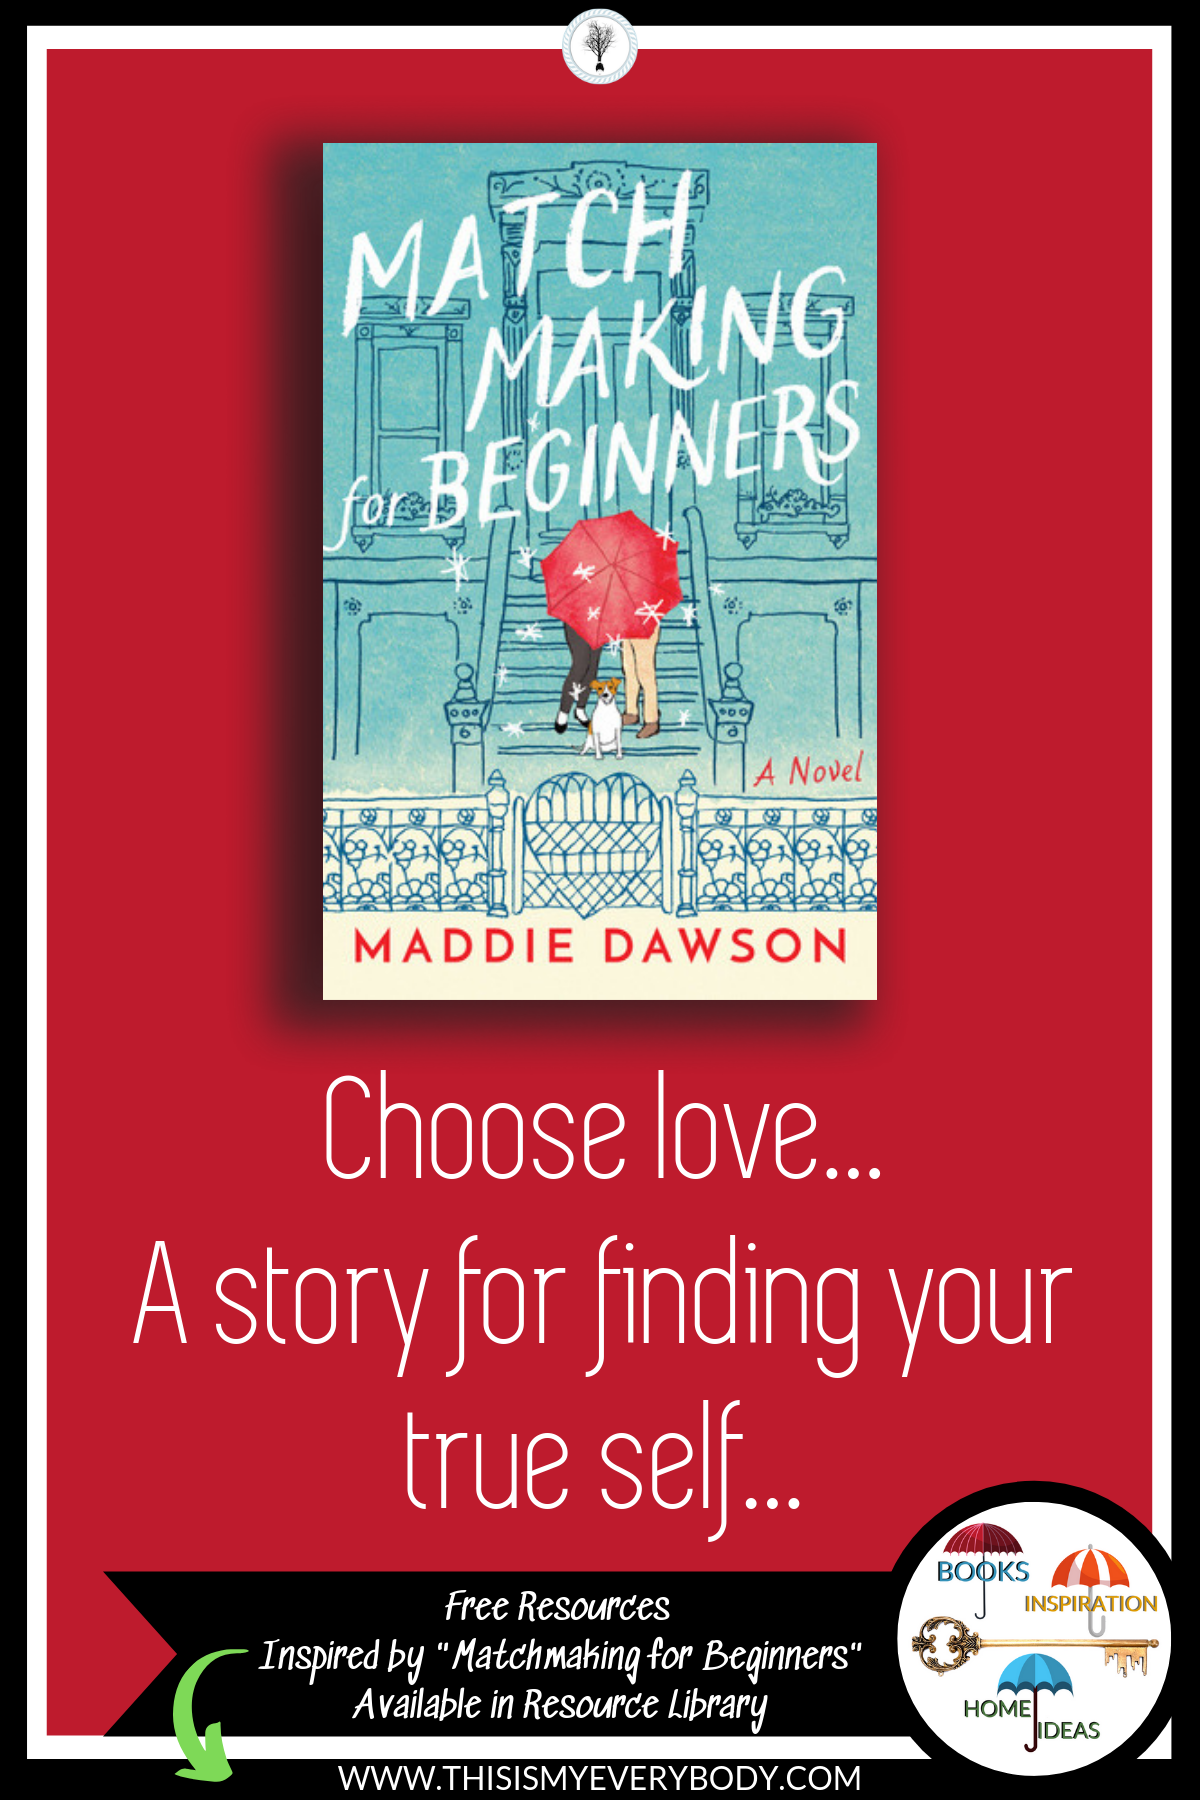 Choose love… A story for finding your true self… Get my free Book Club and DIY Home Ideas resources inspired by Matchmaking for Beginners by Maddie Dawson| This Is My Everybody - Books, Inspiration and Home Ideas